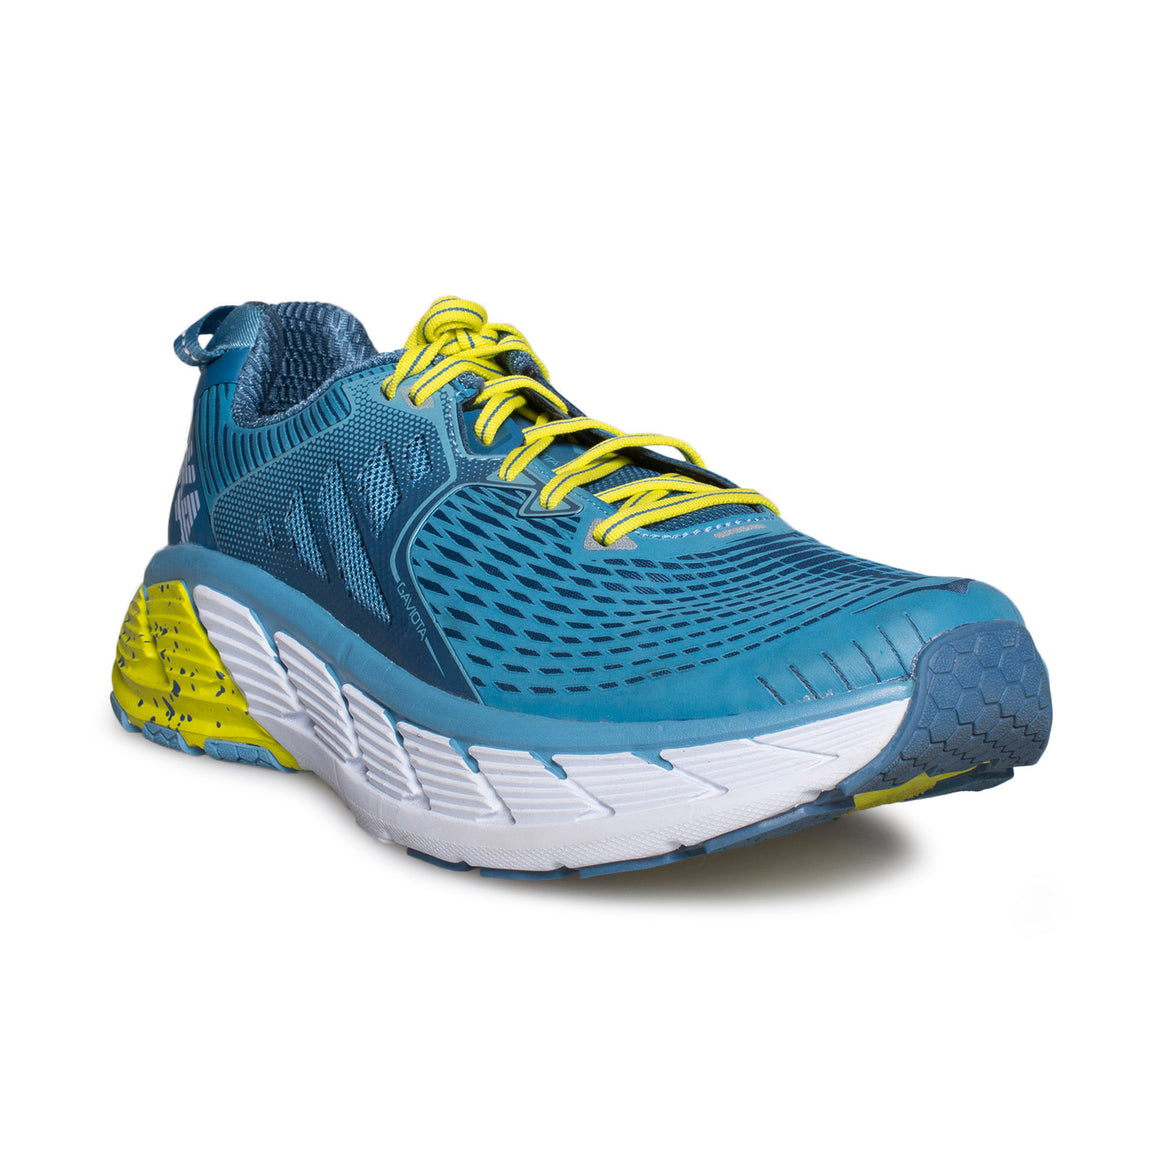 HOKA Gaviota Niagara / Midnight Shoes - Men's